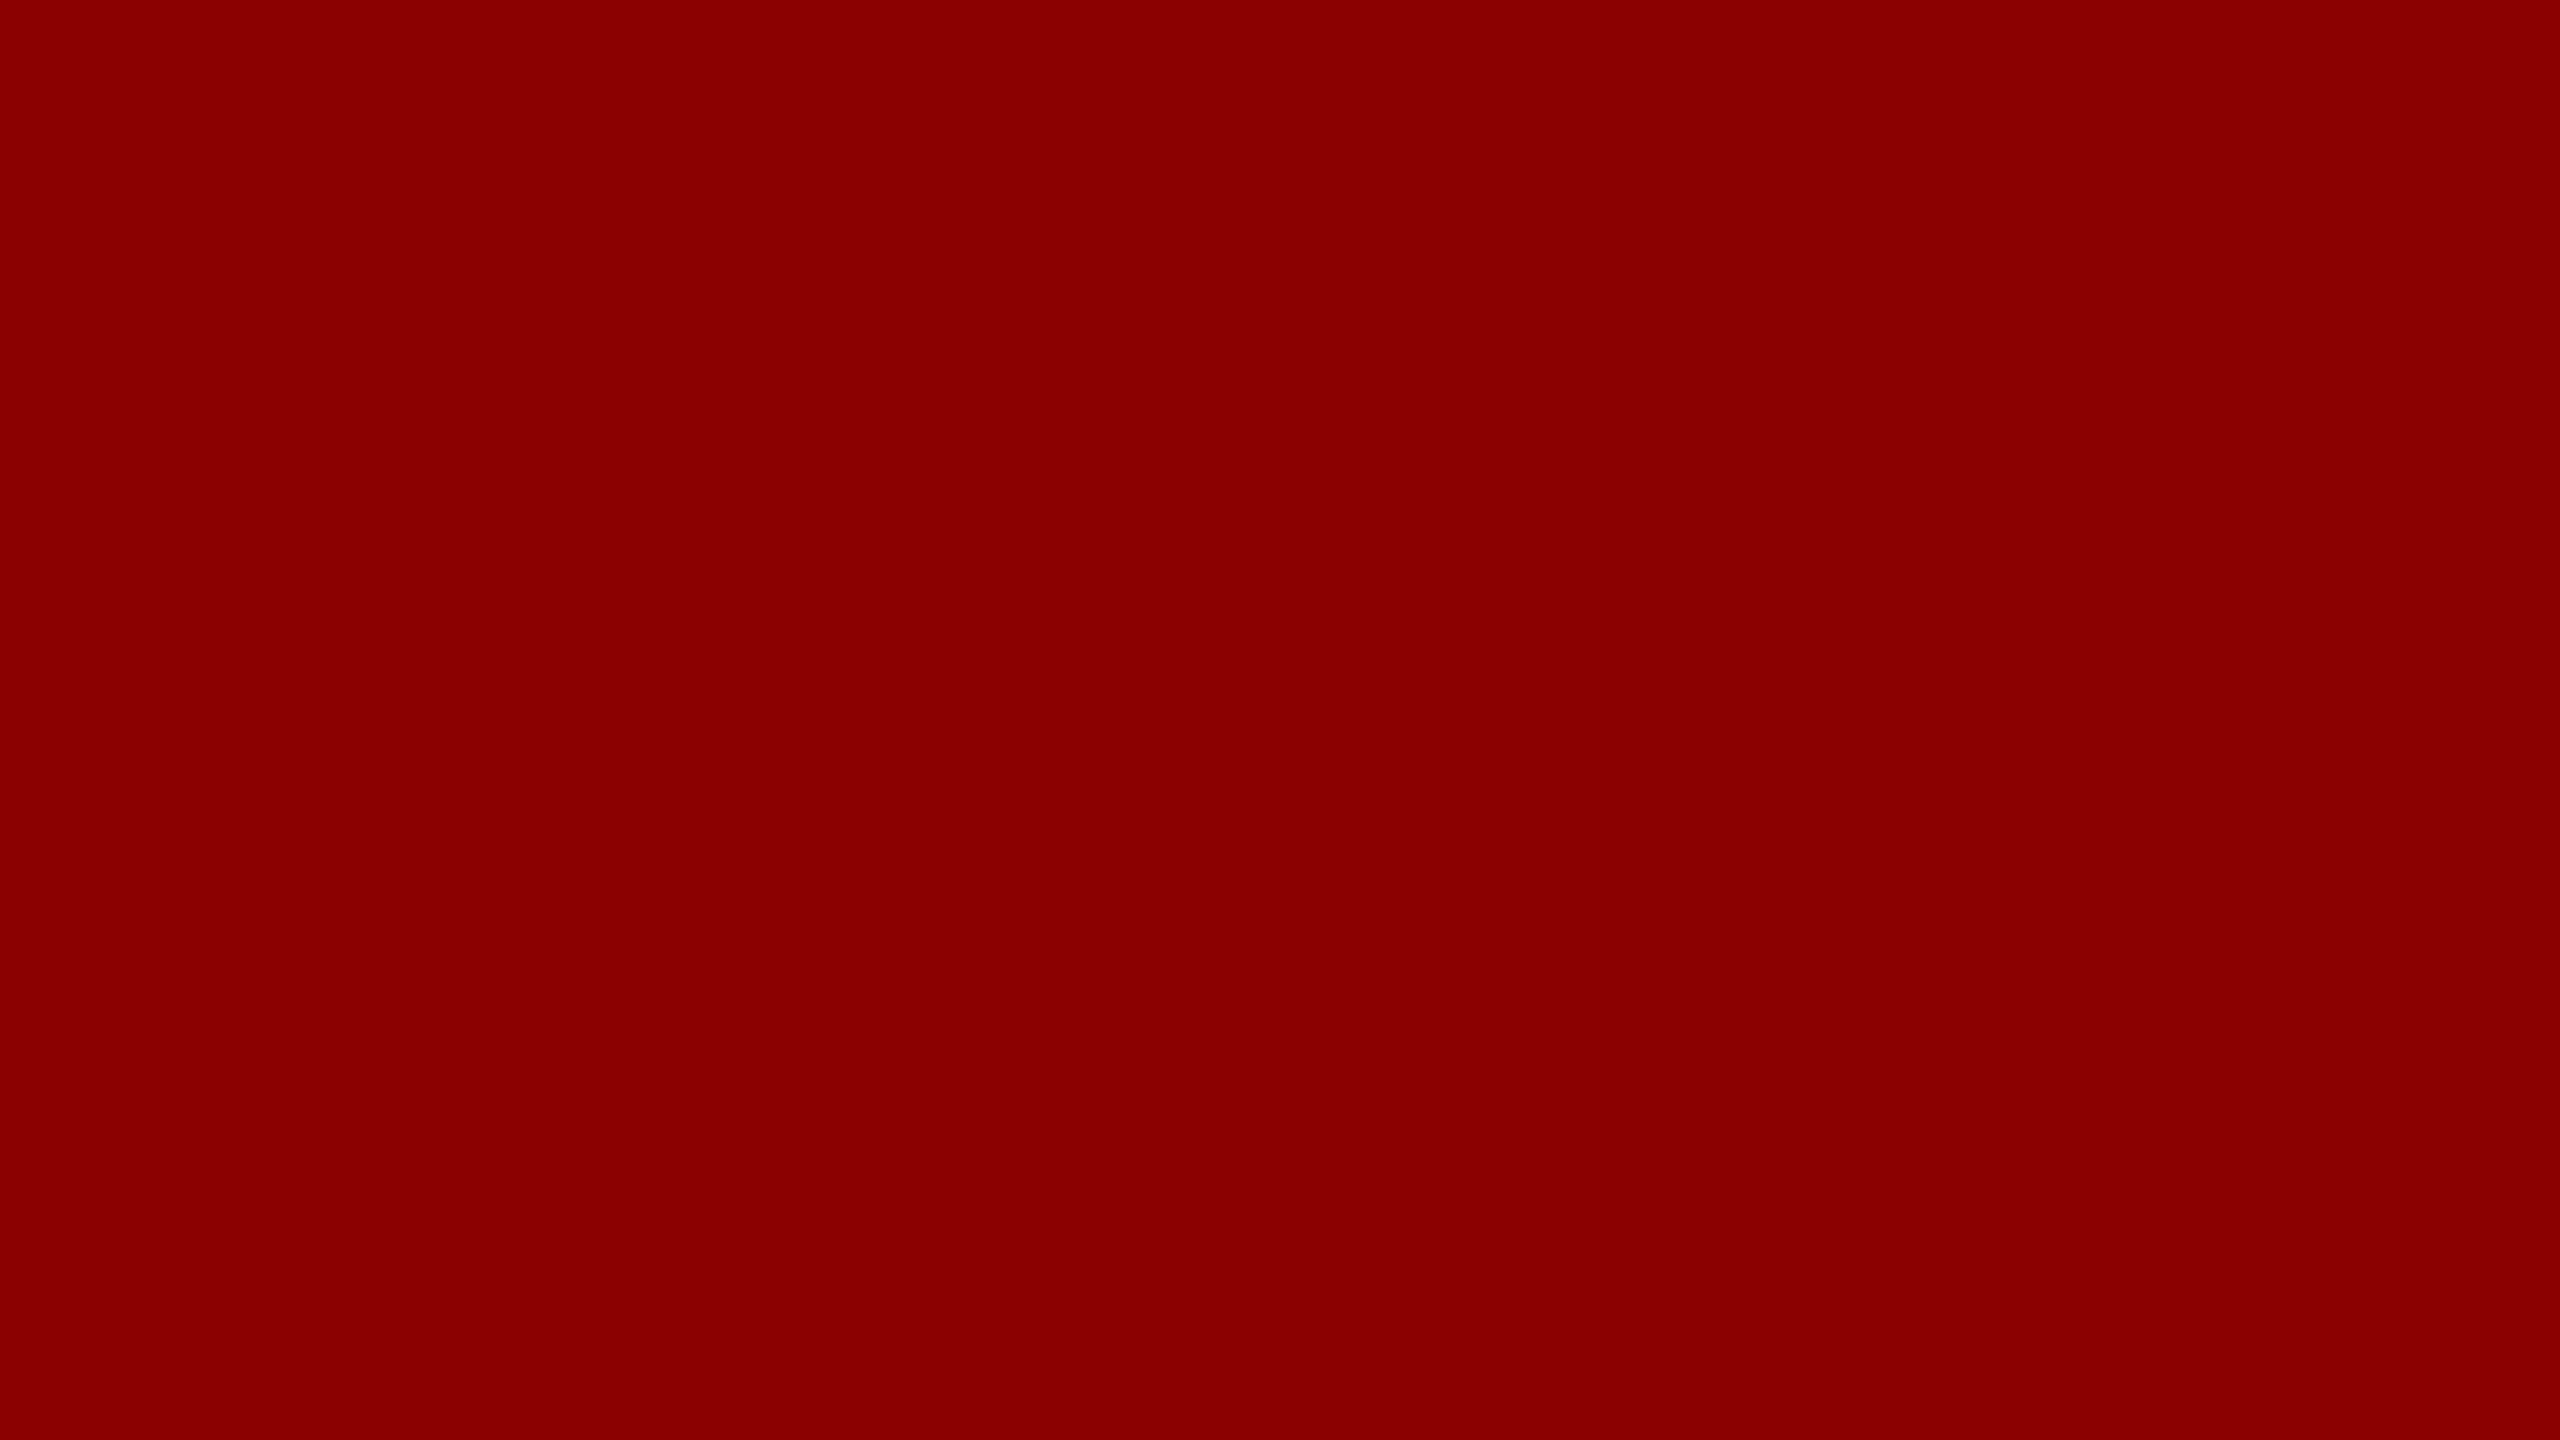 2560x1440 Dark Red Solid Color Background